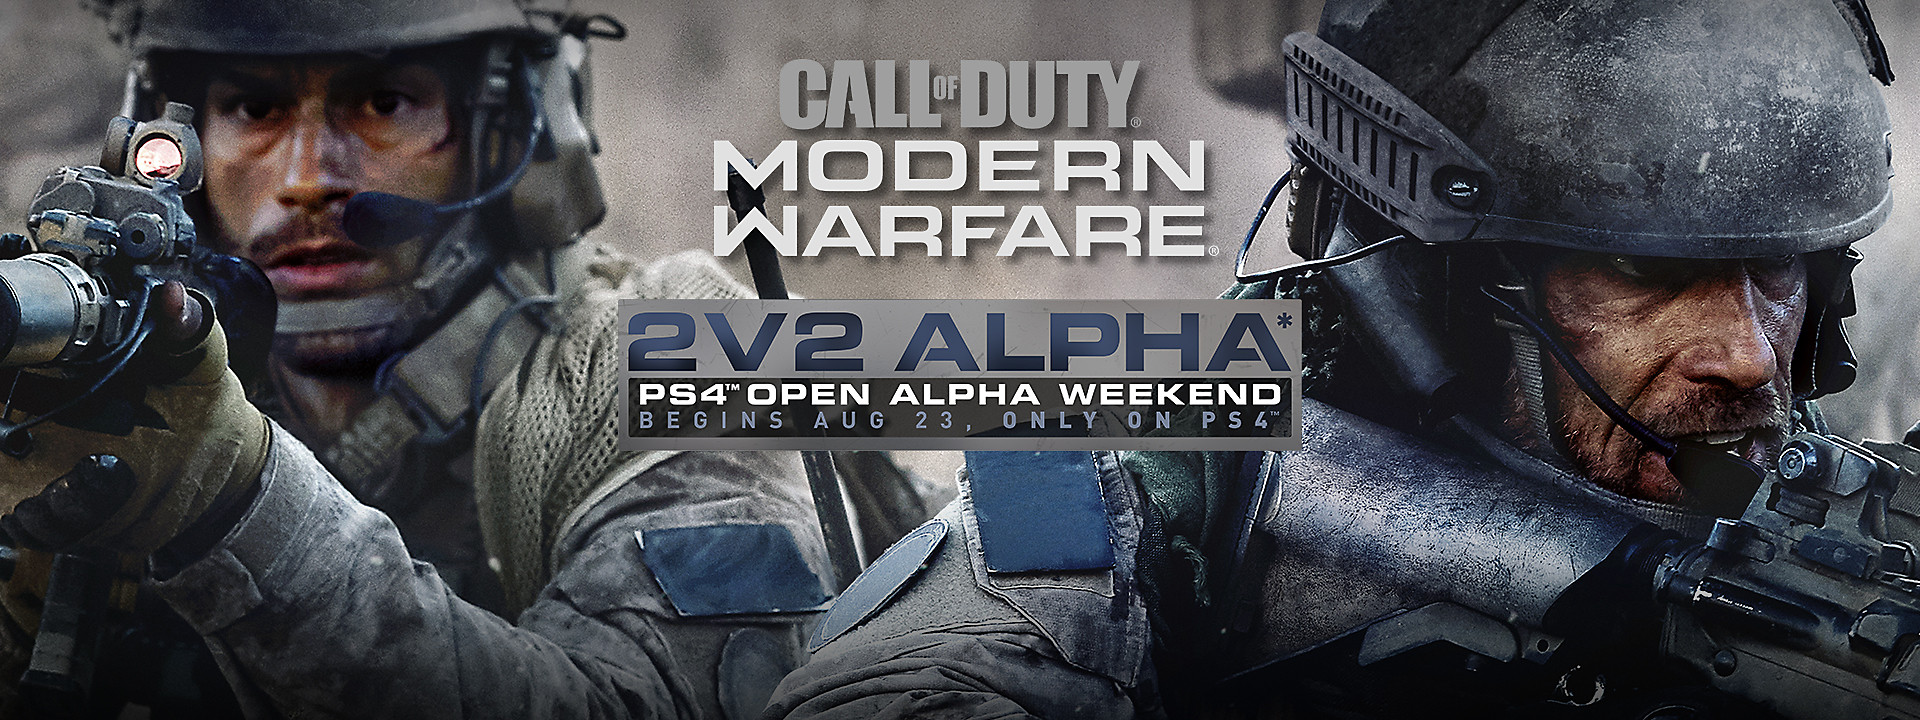 Call of Duty: Modern Warfare - PlayStation-Exclusive 2v2 Alpha Available August 24